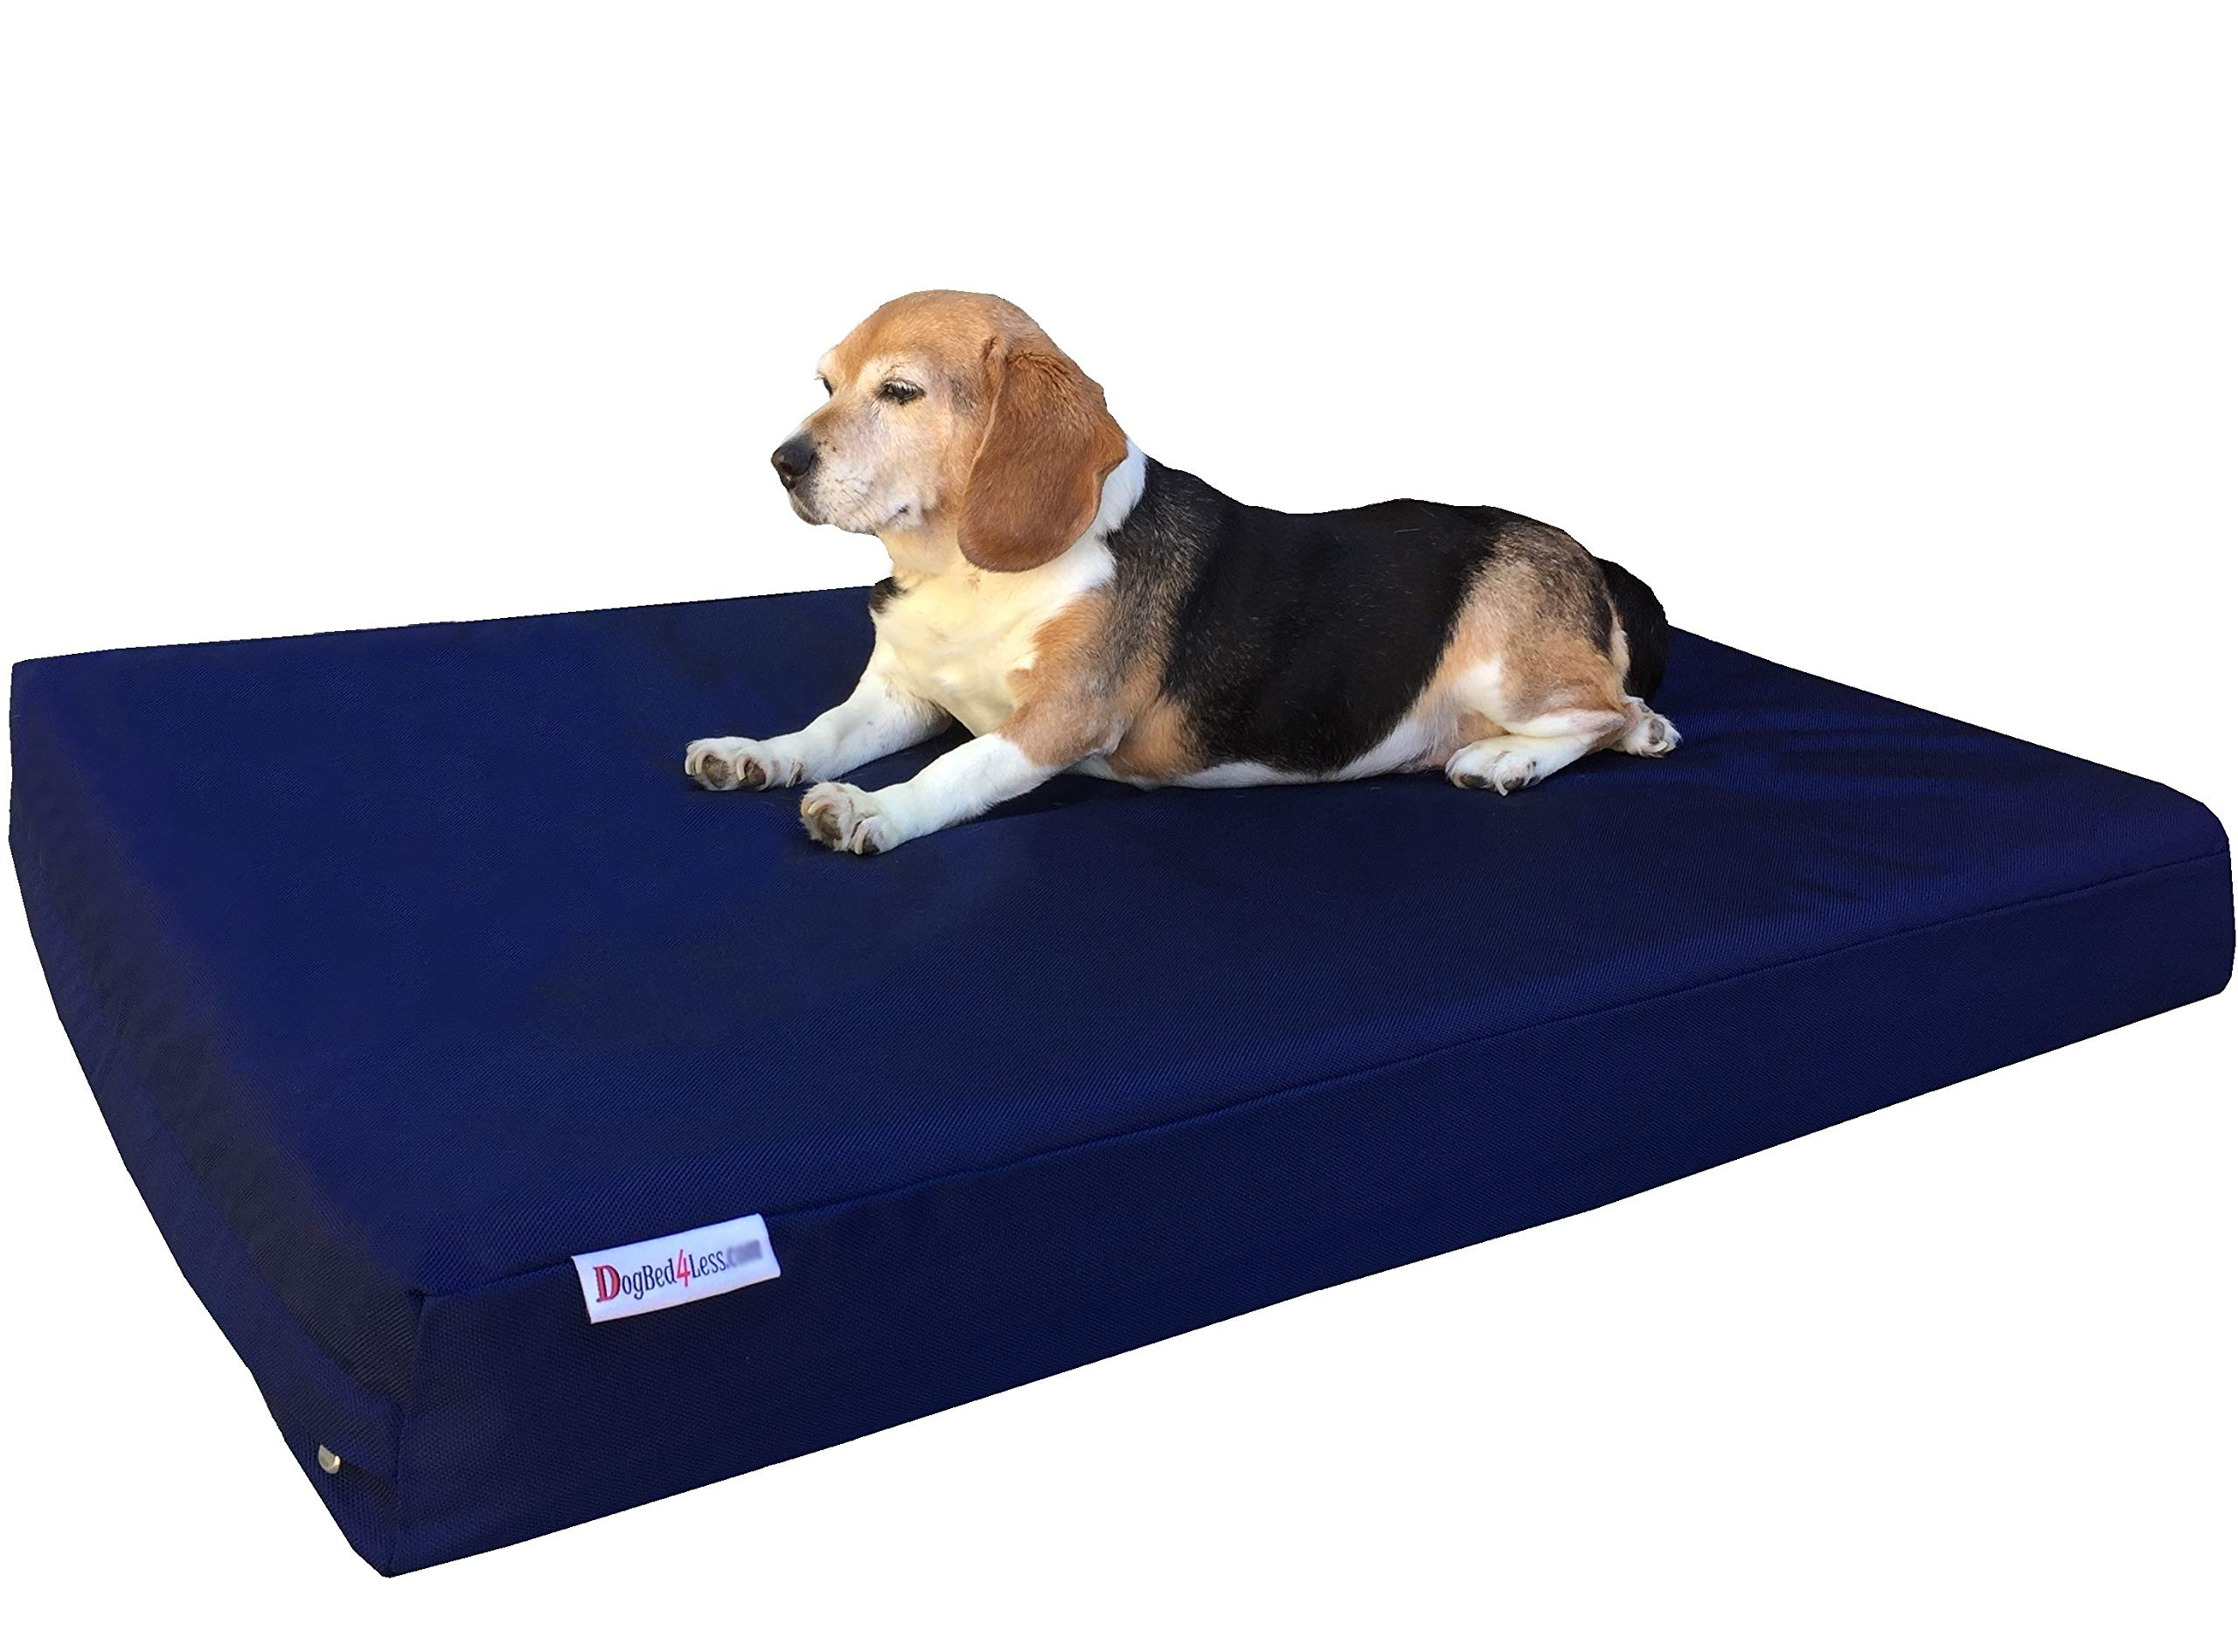 Dogbed4less Durable Large Gel Memory Foam Dog Bed with 1680 Nylon Blue Cover and Waterproof Liner with Bonus Cover, 41X27X4 Inch (Fit 42X28 Crate) by Dogbed4less